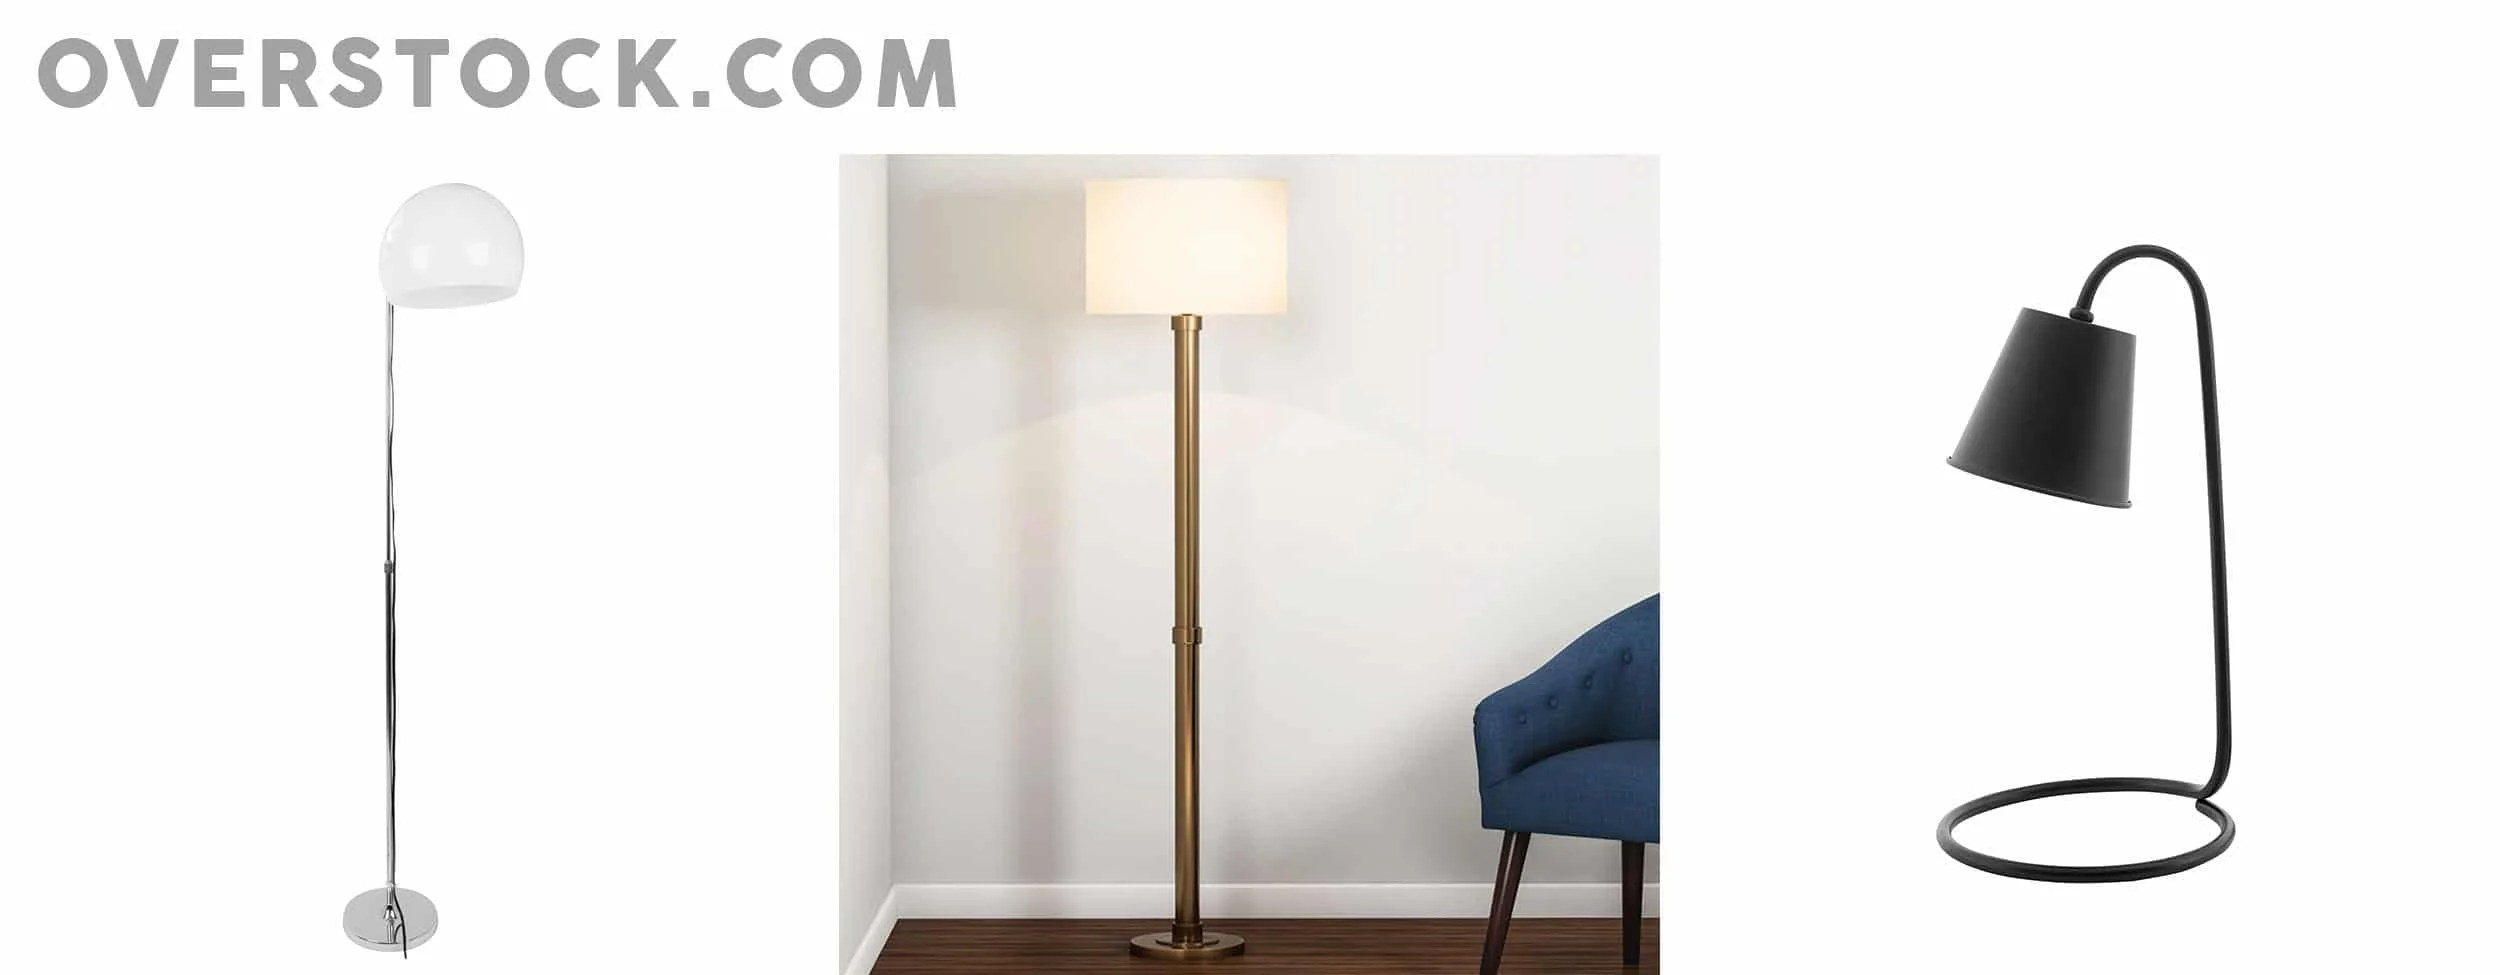 where to buy affordable lighting online